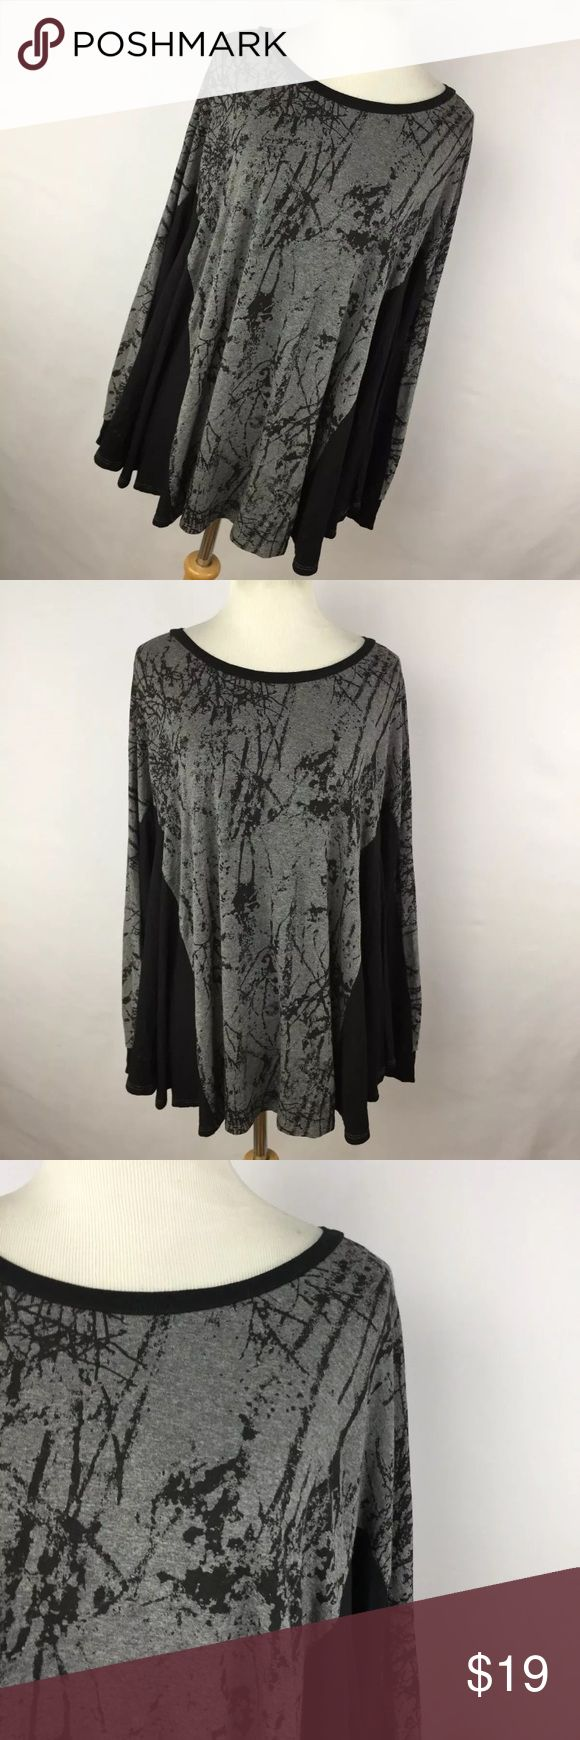 "Comfy USA M Shirt Top Black Gray Swing Oversized This is a beautiful oversized top. Rayon blend. Chest measurement  - 50"" Length measurement - 24"" Sleeve Length measurement - 22"". Excellent condition. Smoke free home comfy usa Tops Blouses"